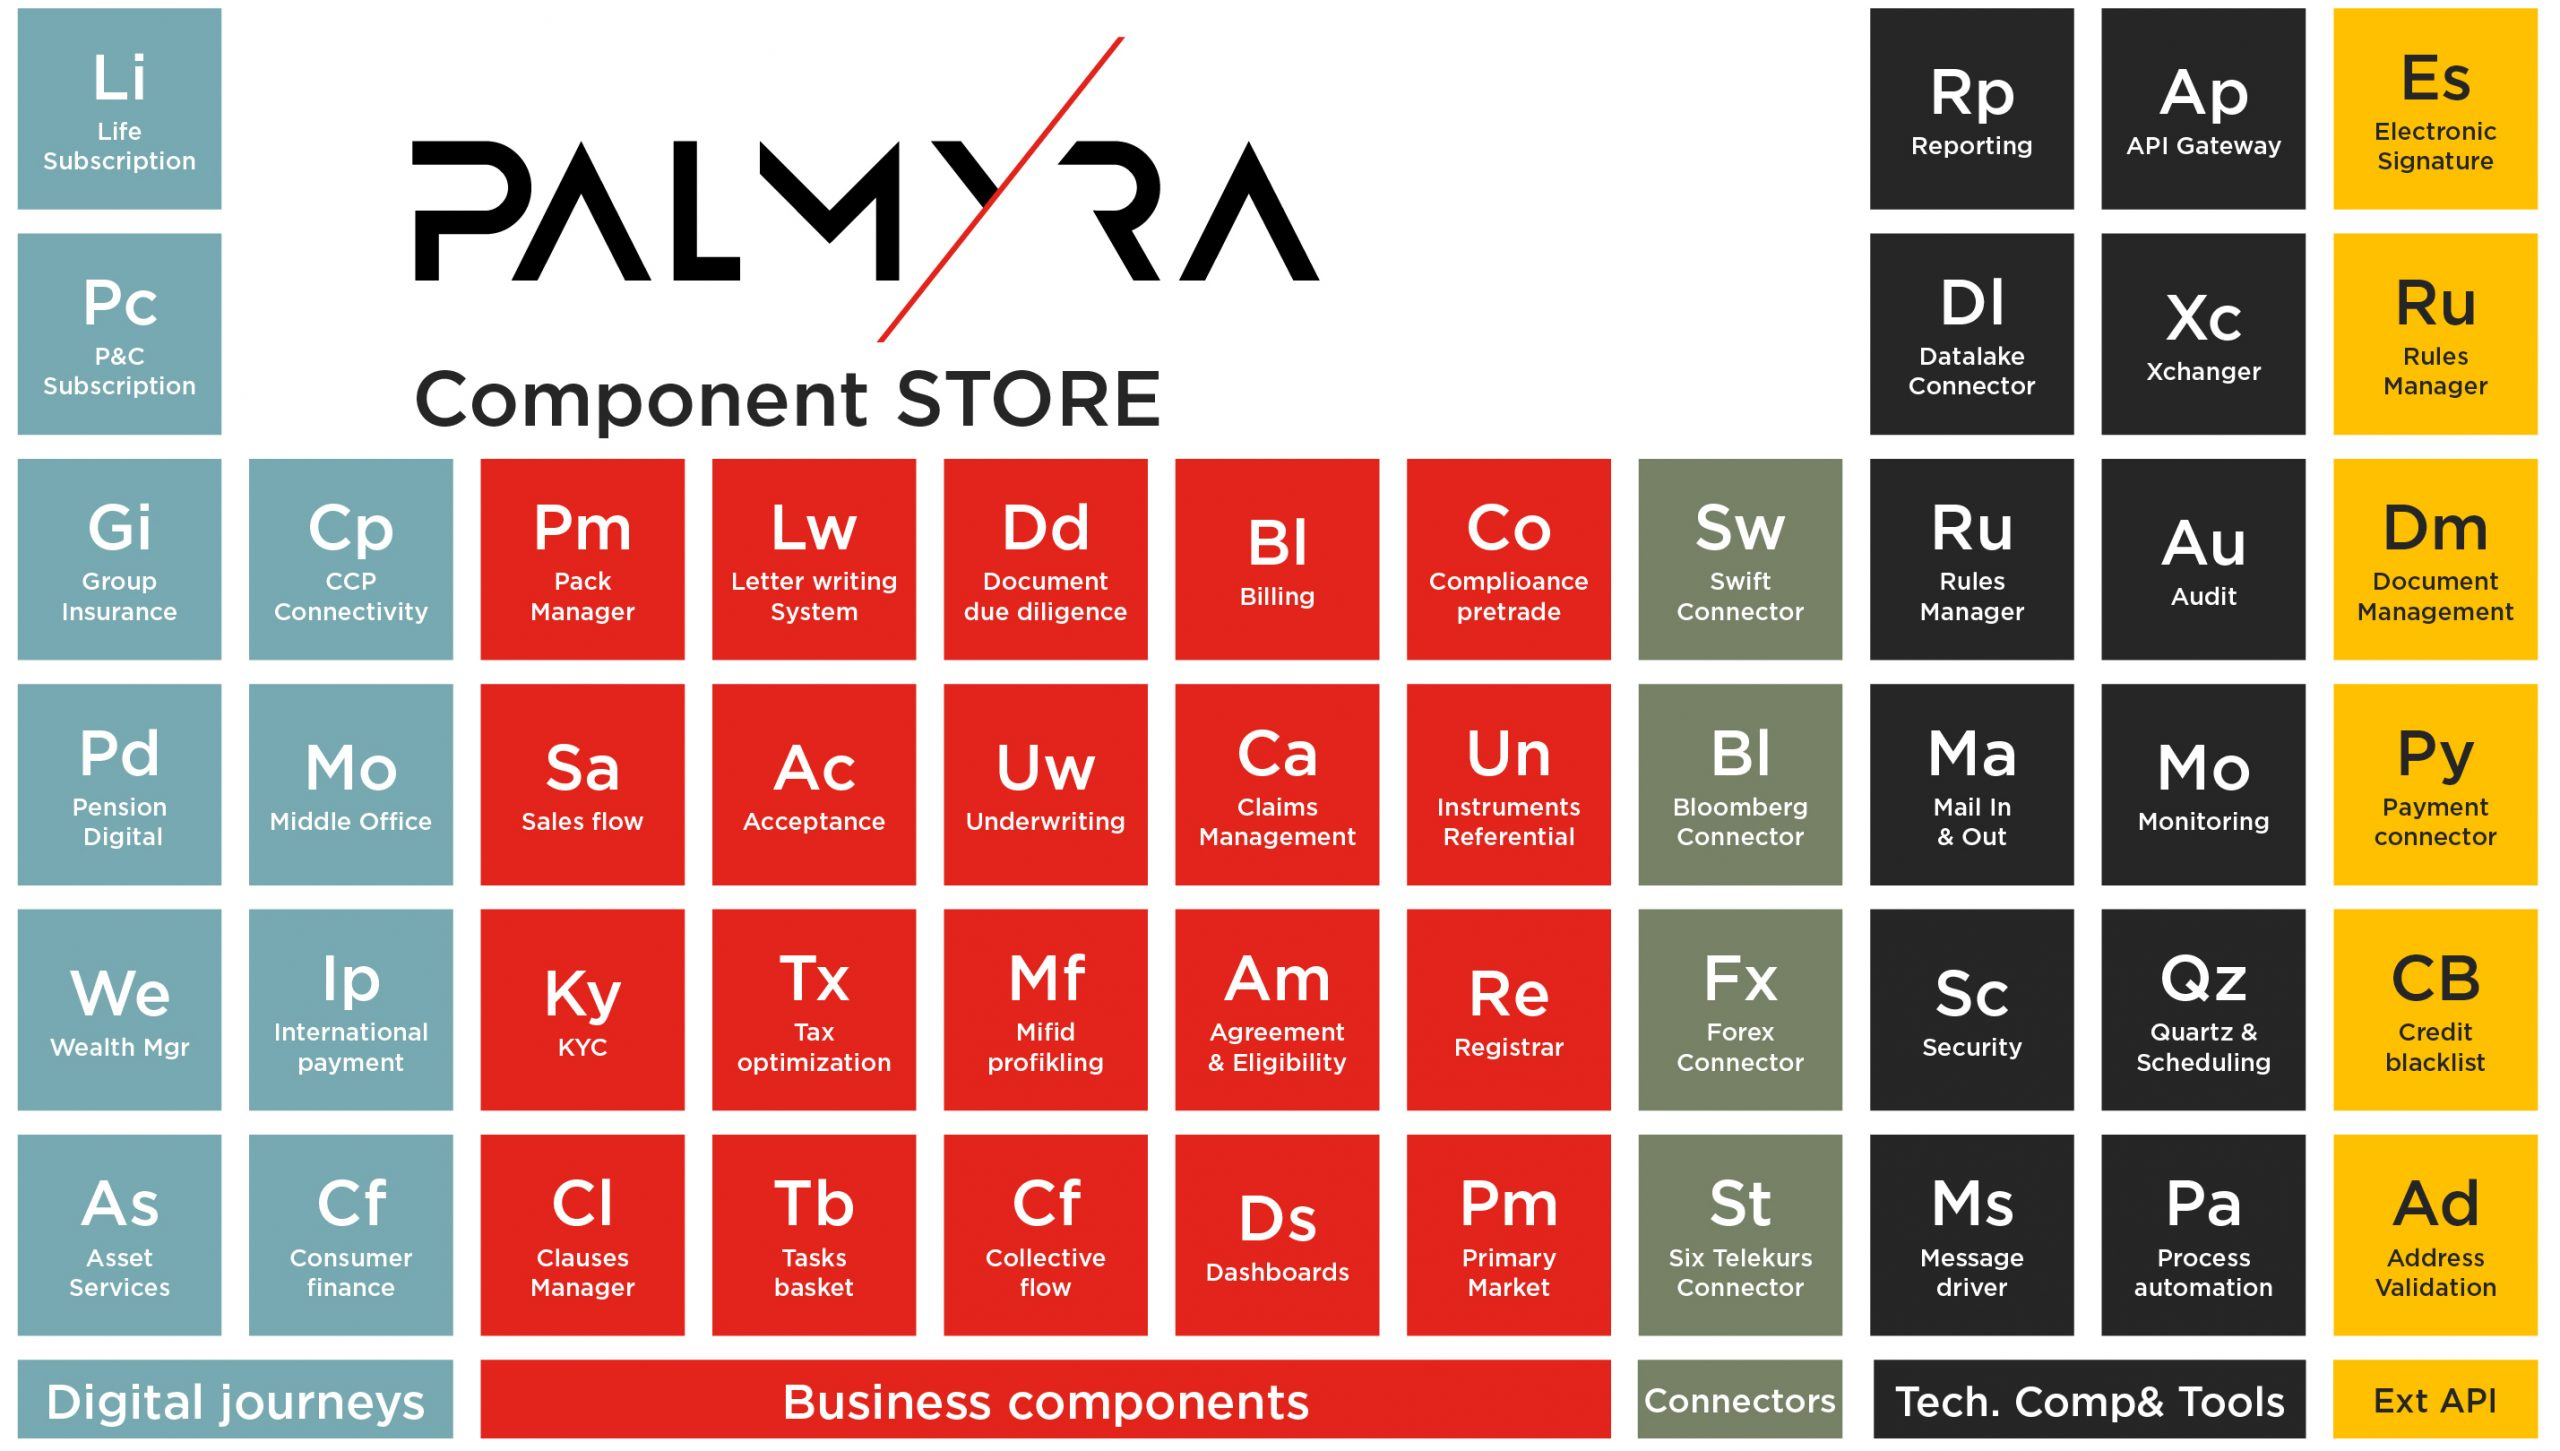 palmyra component store